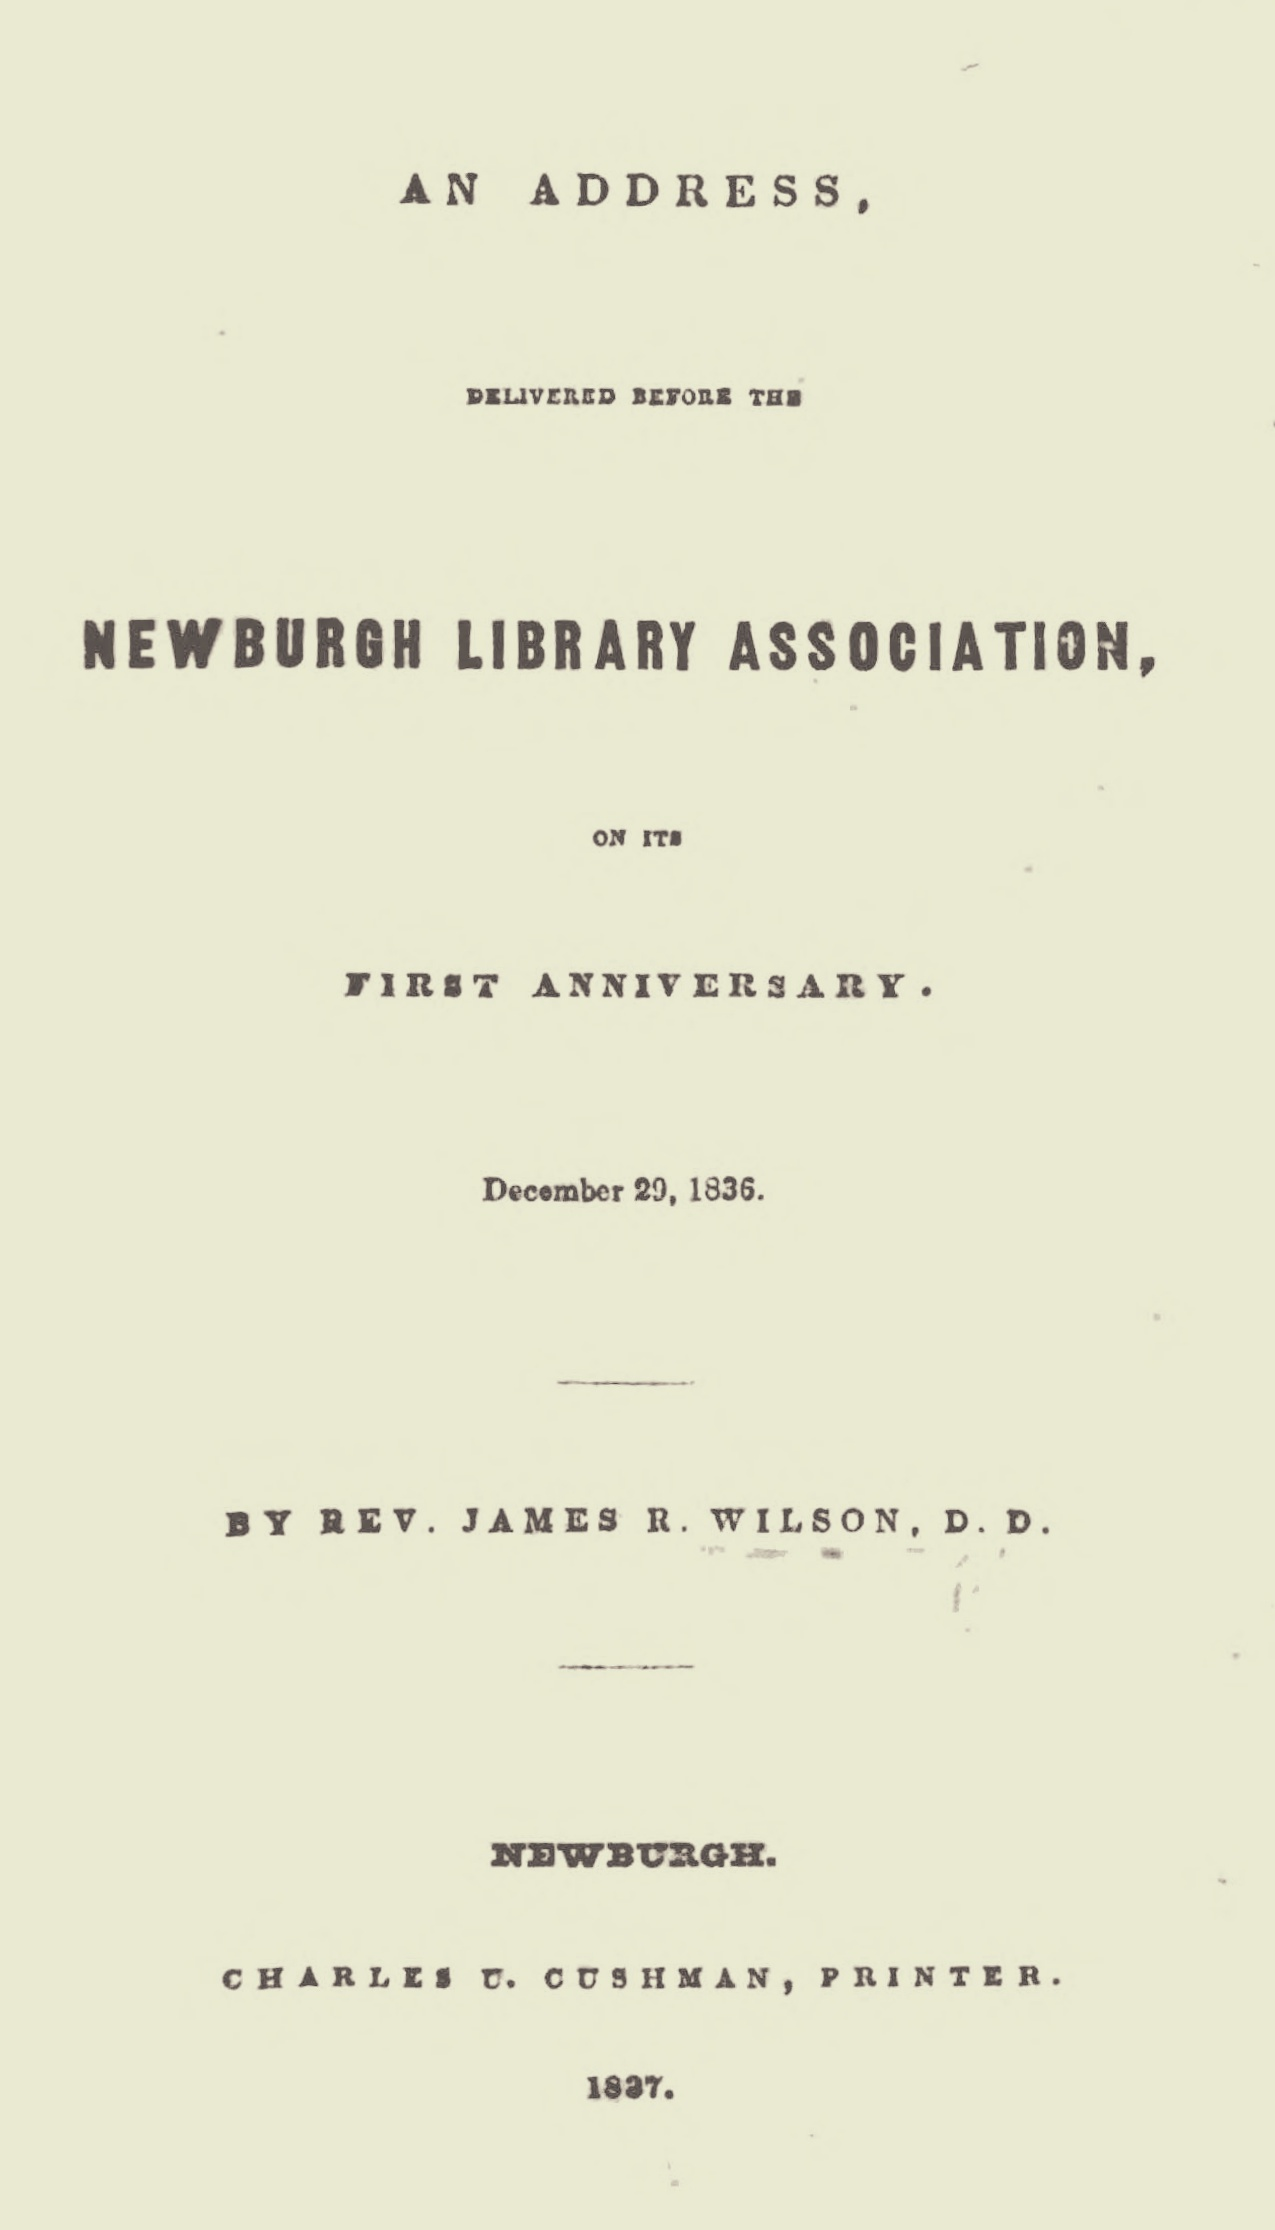 Willson, James Renwick, An Address Delivered Before the Newburgh Library Association Title Page.jpg